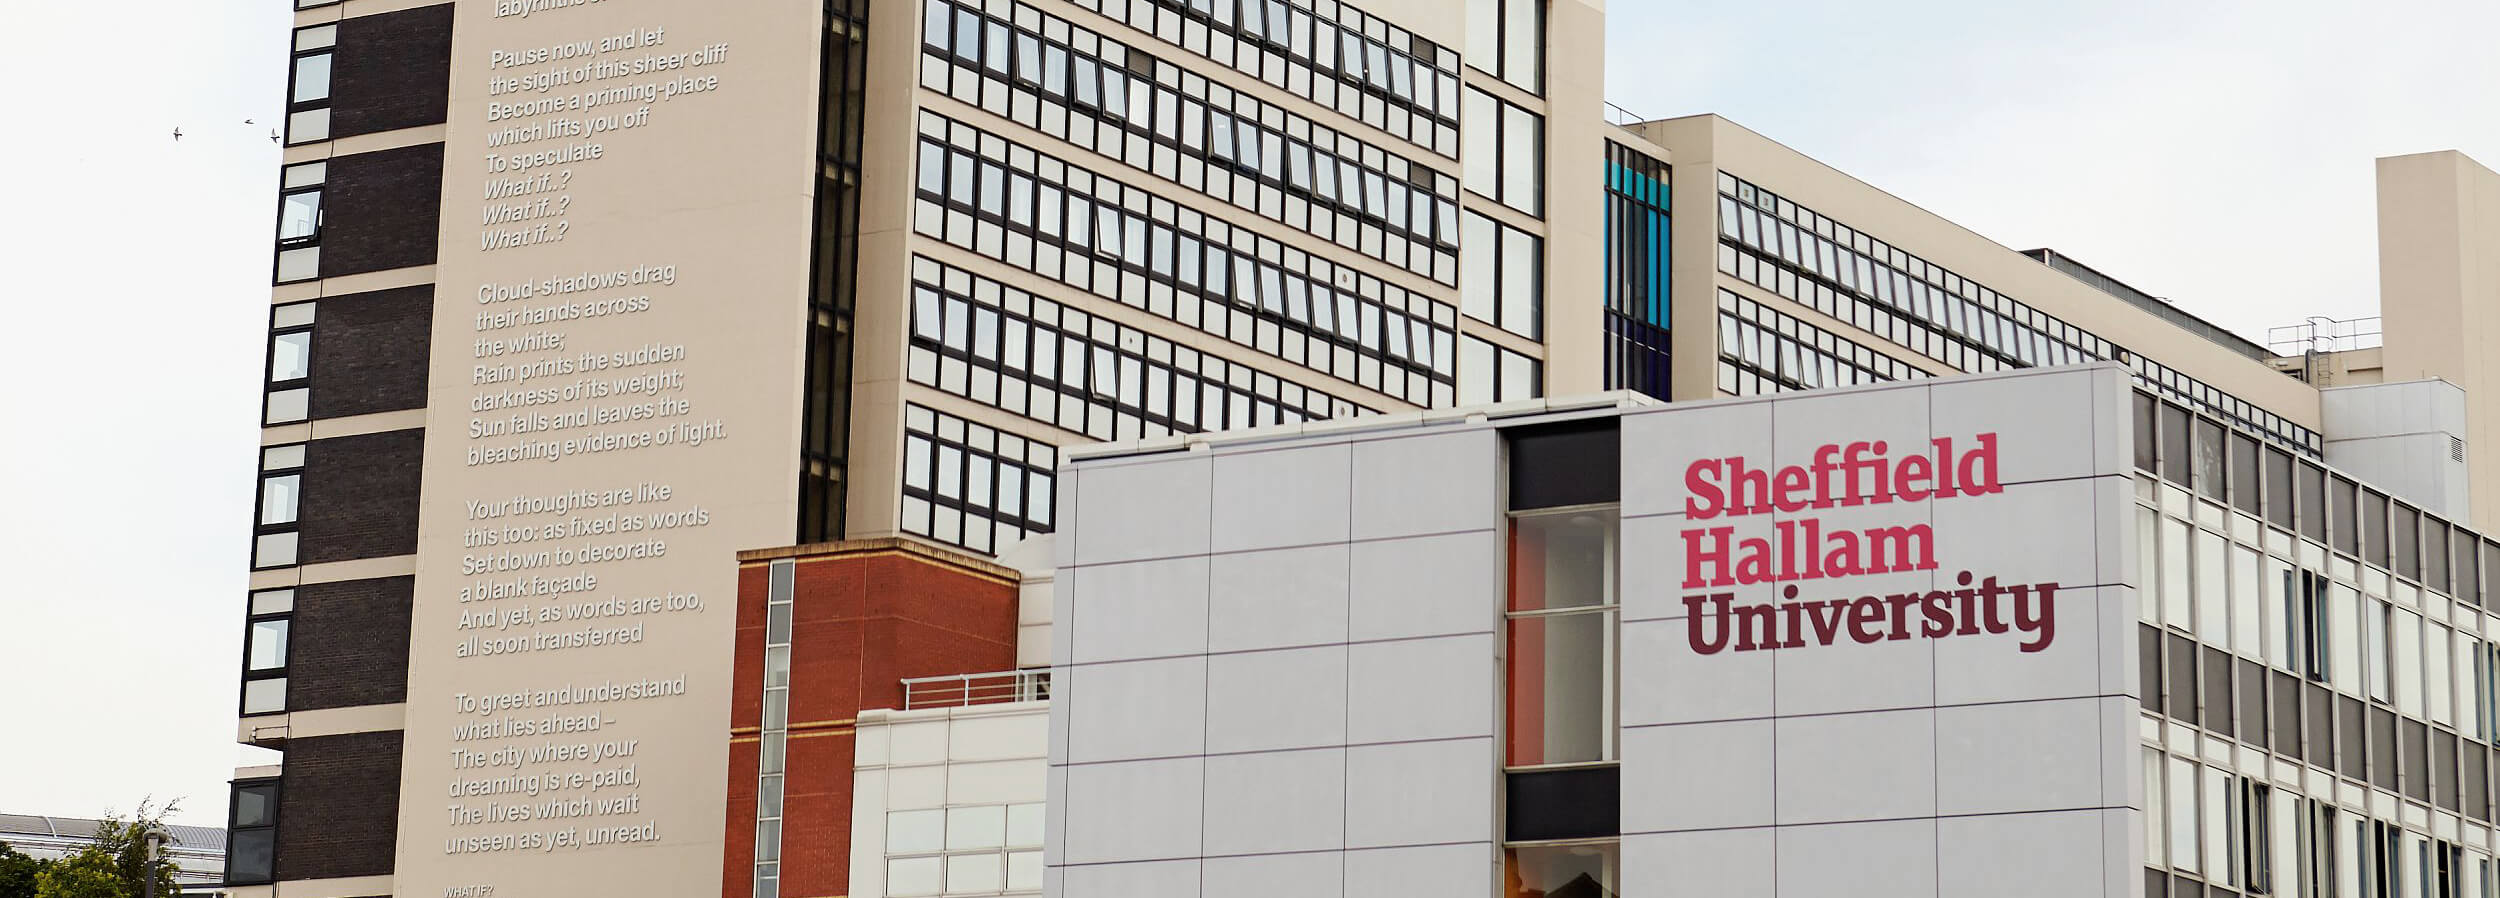 Sheffield Hallam University building